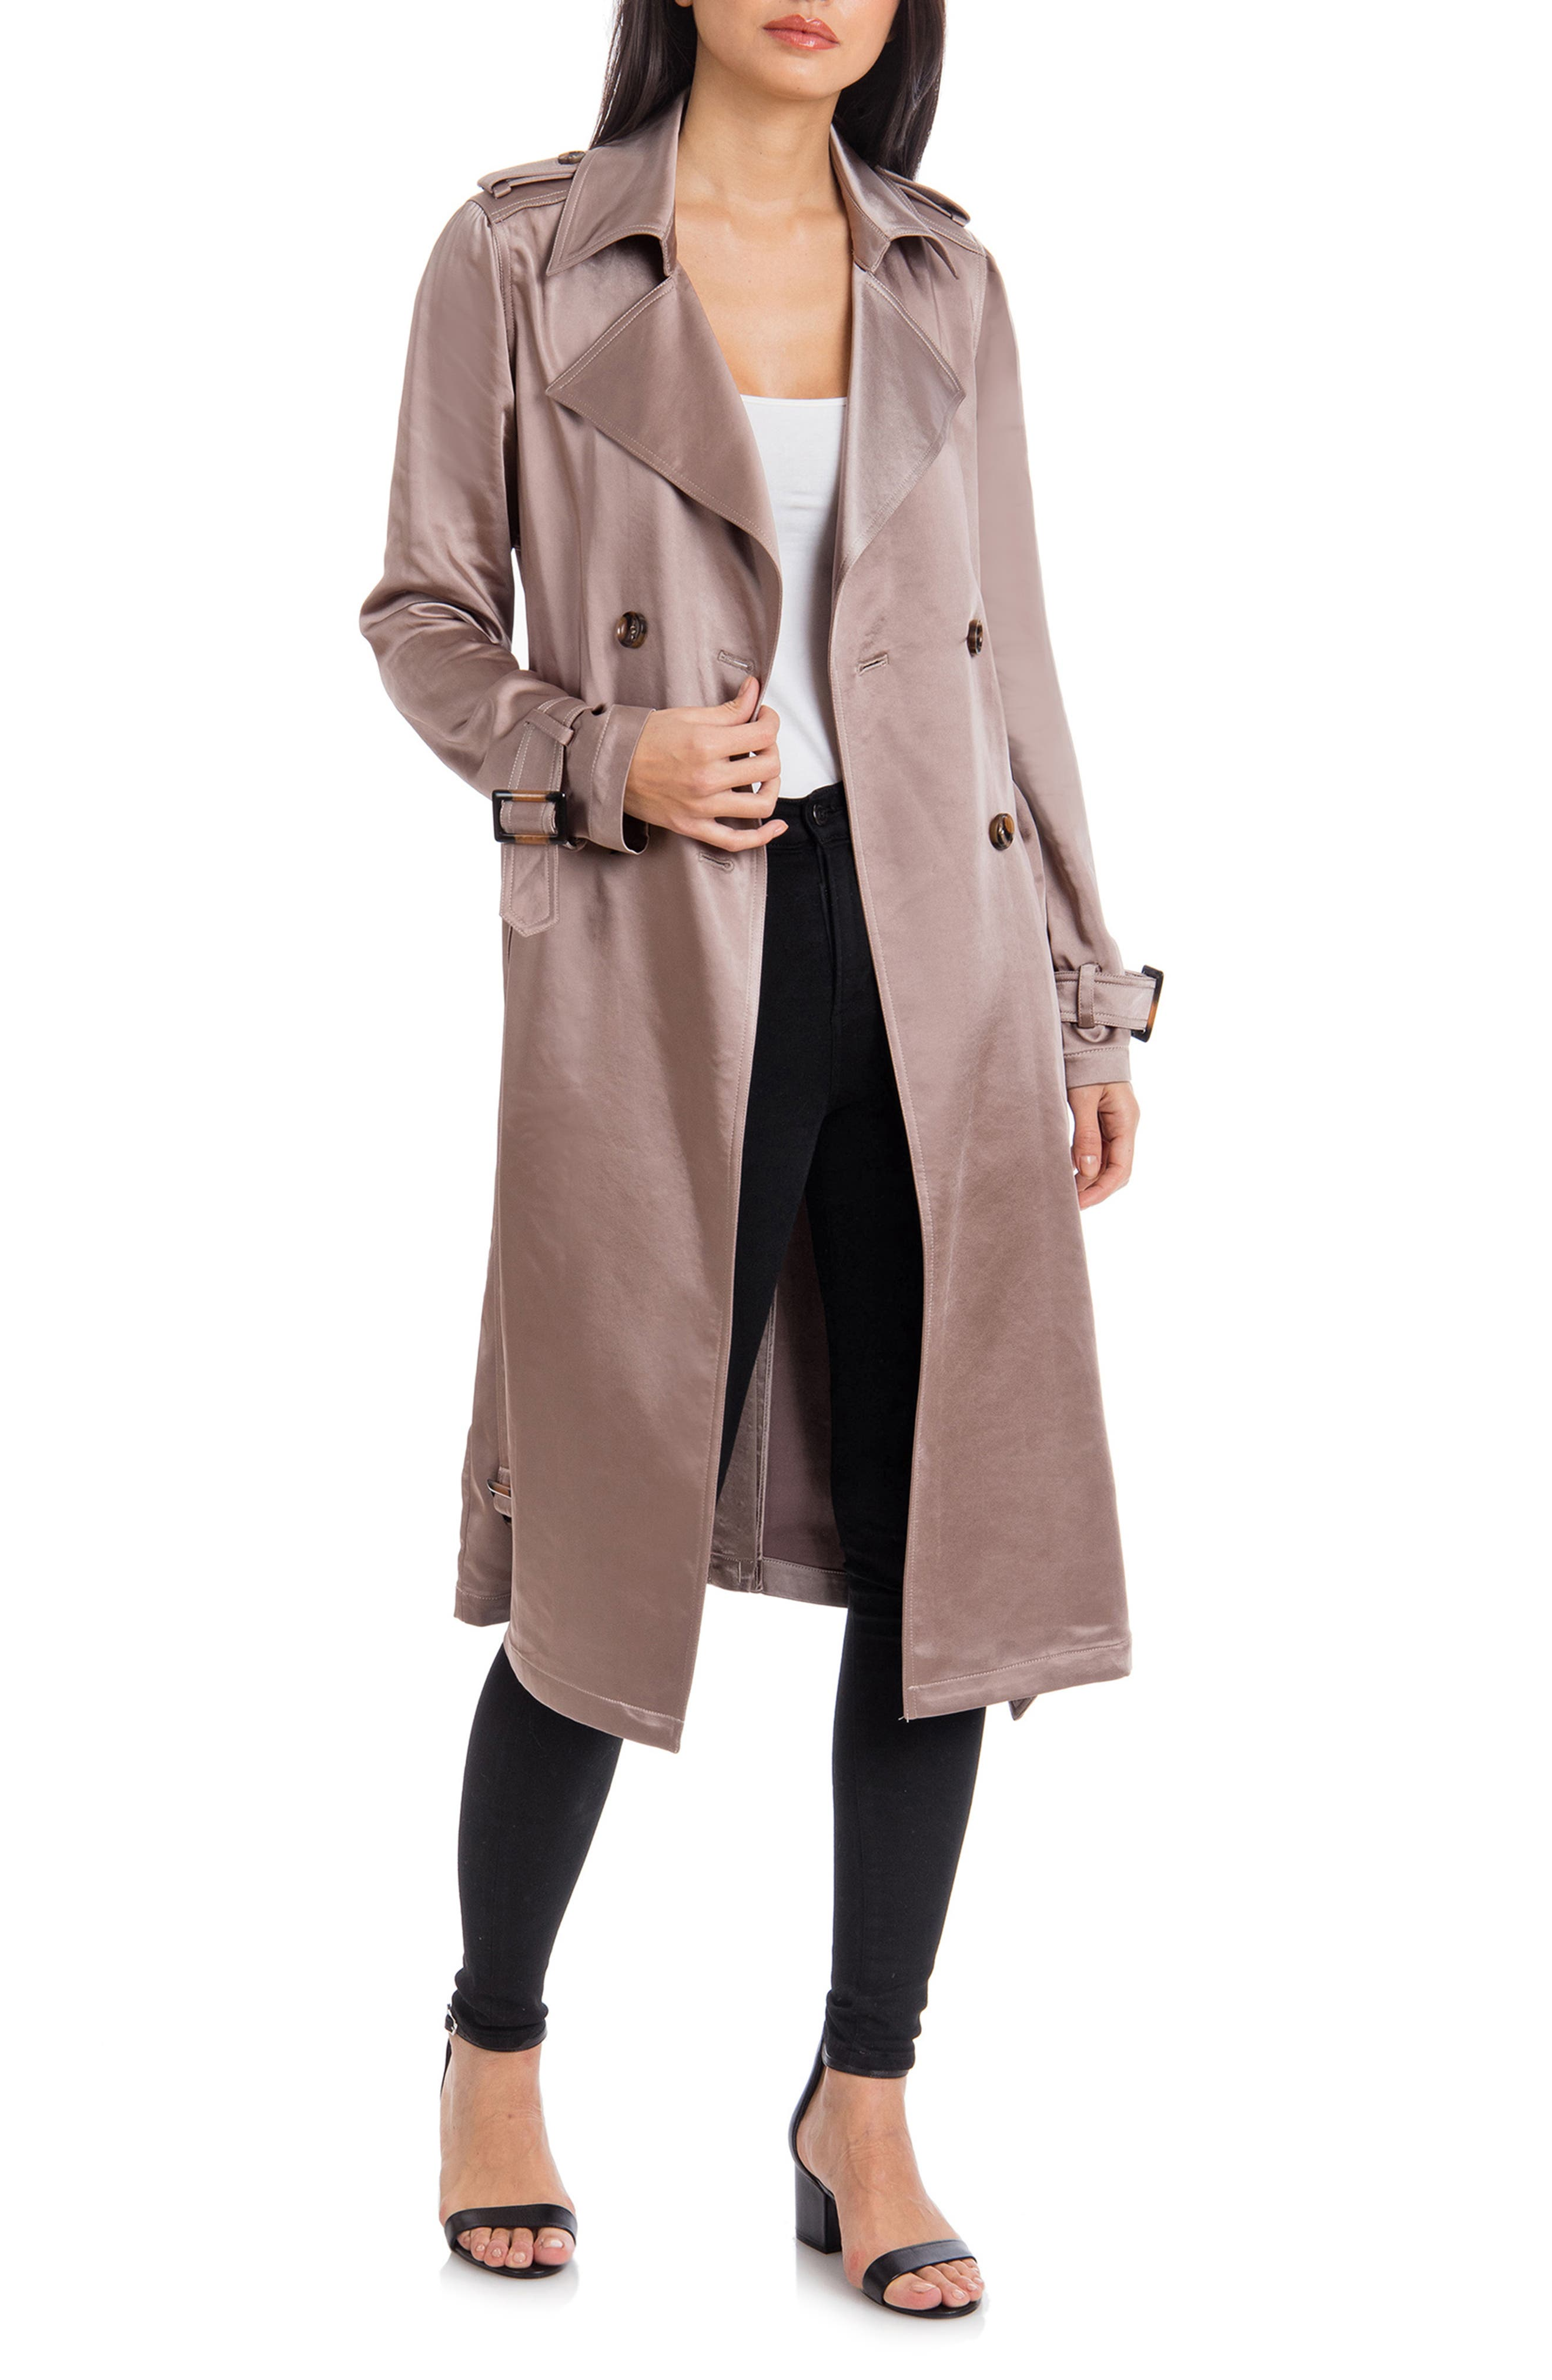 BADGLEY MISCHKA COLLECTION Badgley Mischka Double Breasted Satin Trench Coat, Main, color, 250